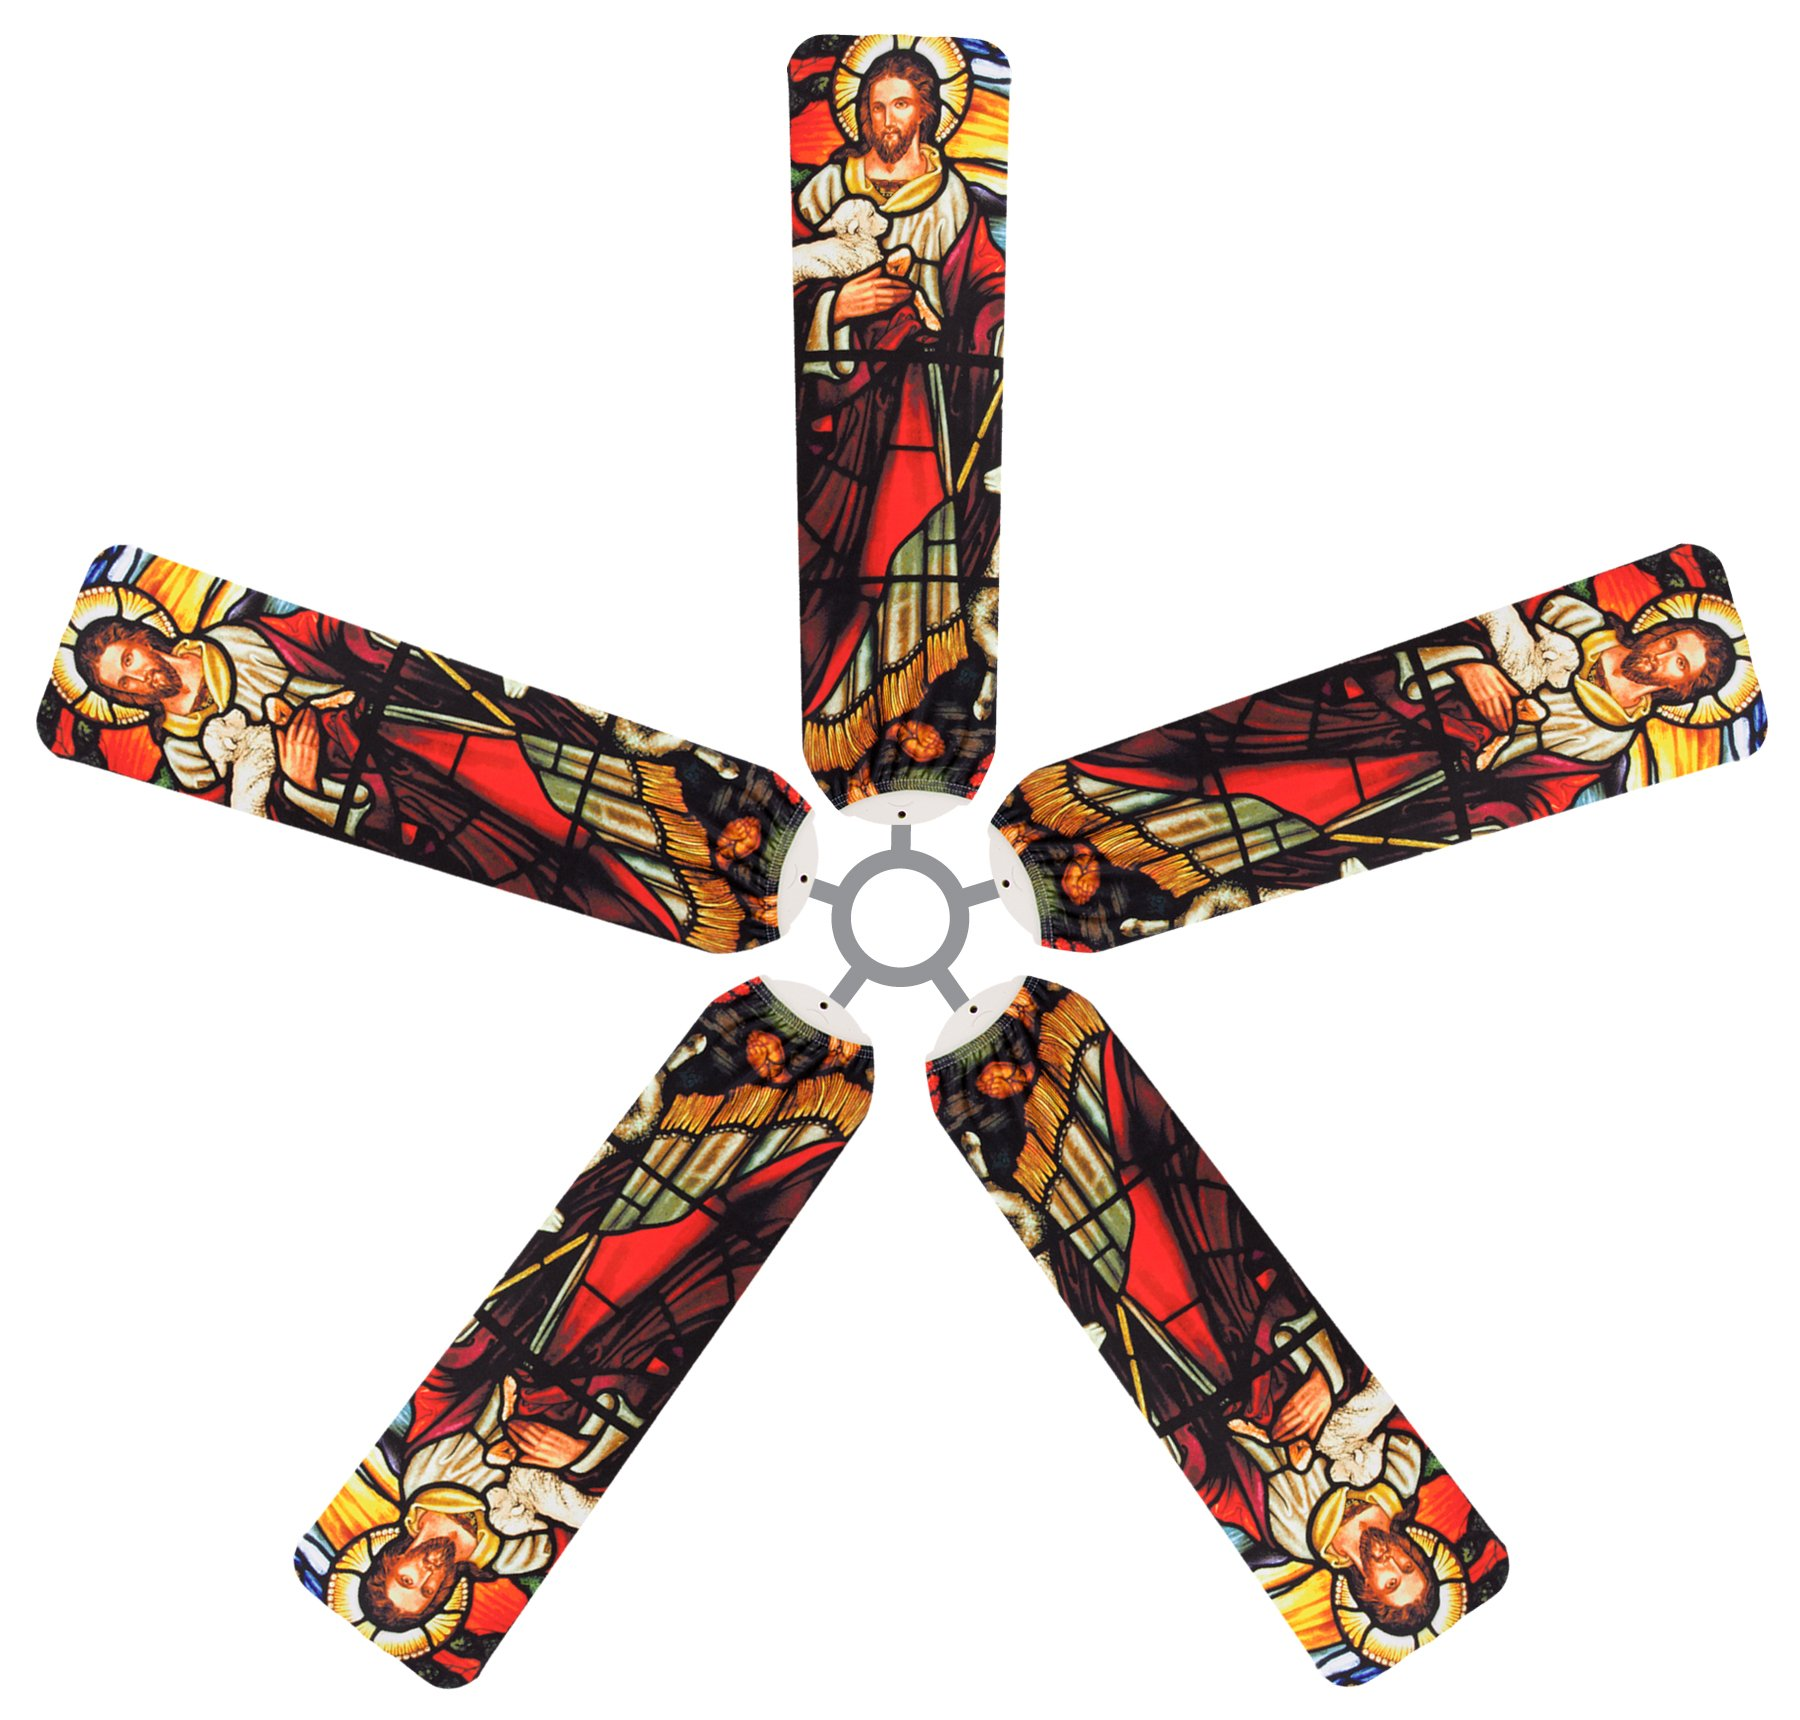 Fan Blade Designs The Good Shepherd Ceiling Fan Blade Covers